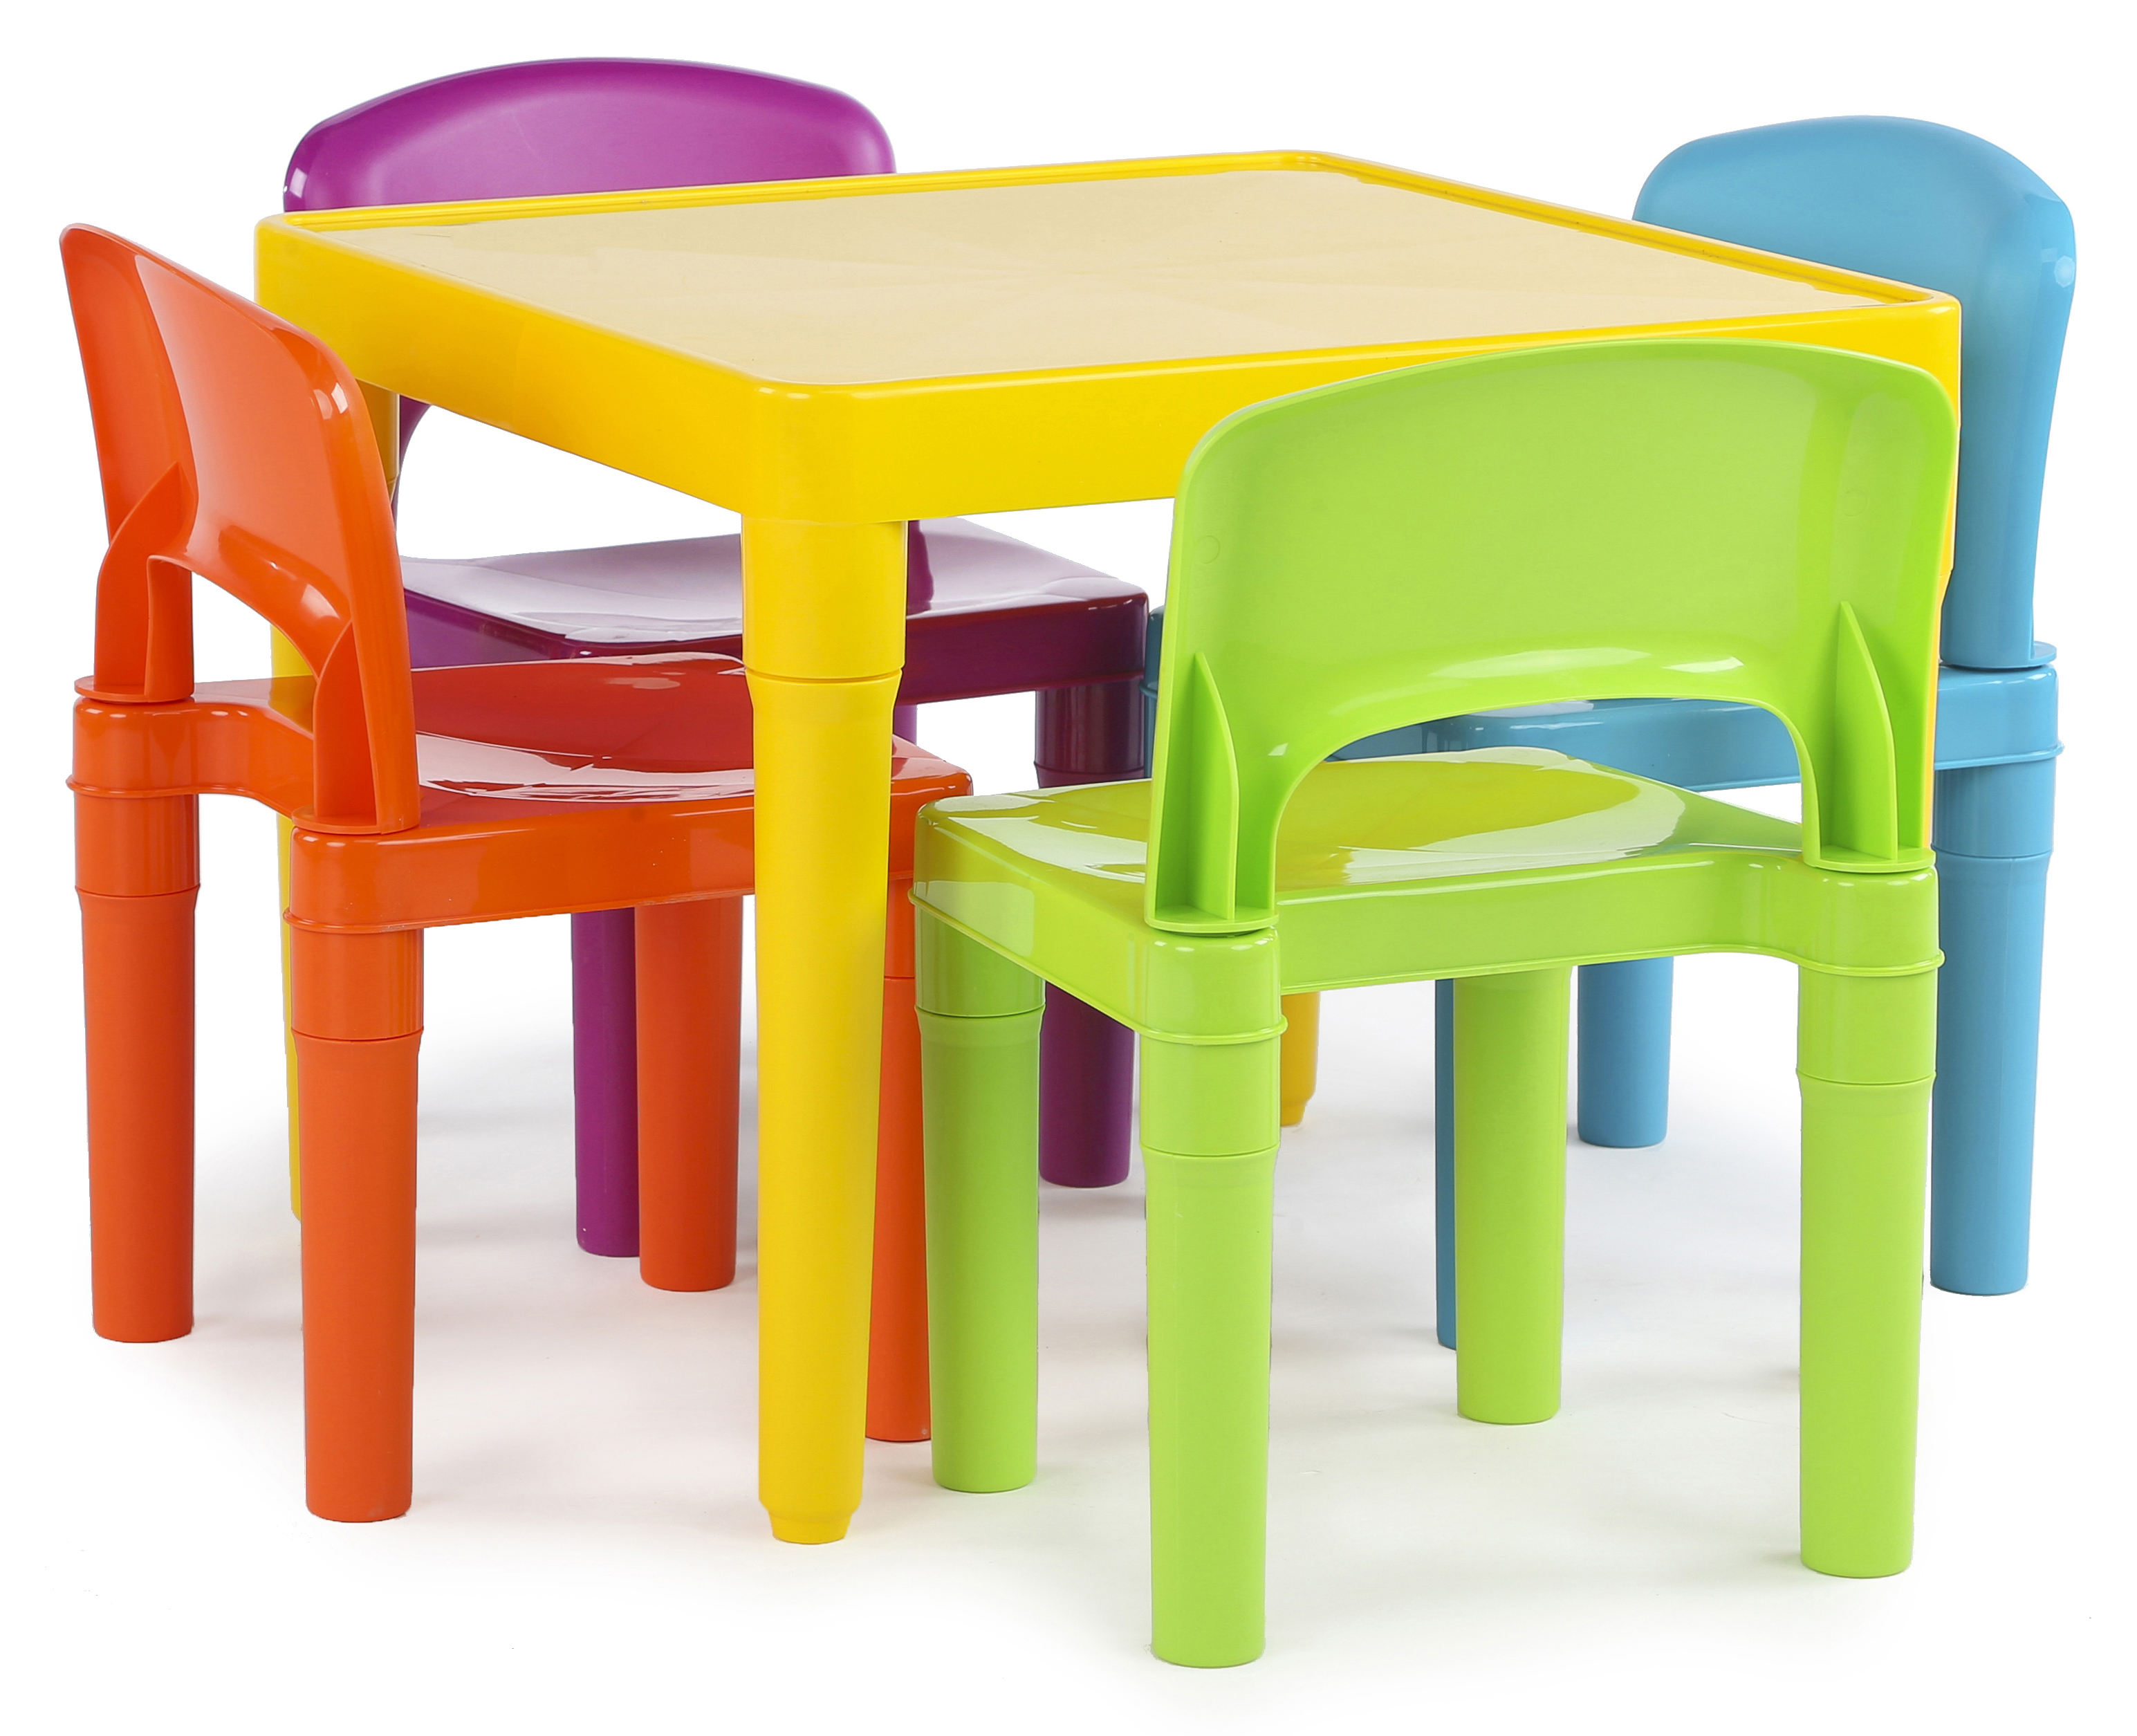 Kids Table And Chairs Clearance Tot Tutors Kids Plastic Table And 4 Chairs Set Vibrant Colors